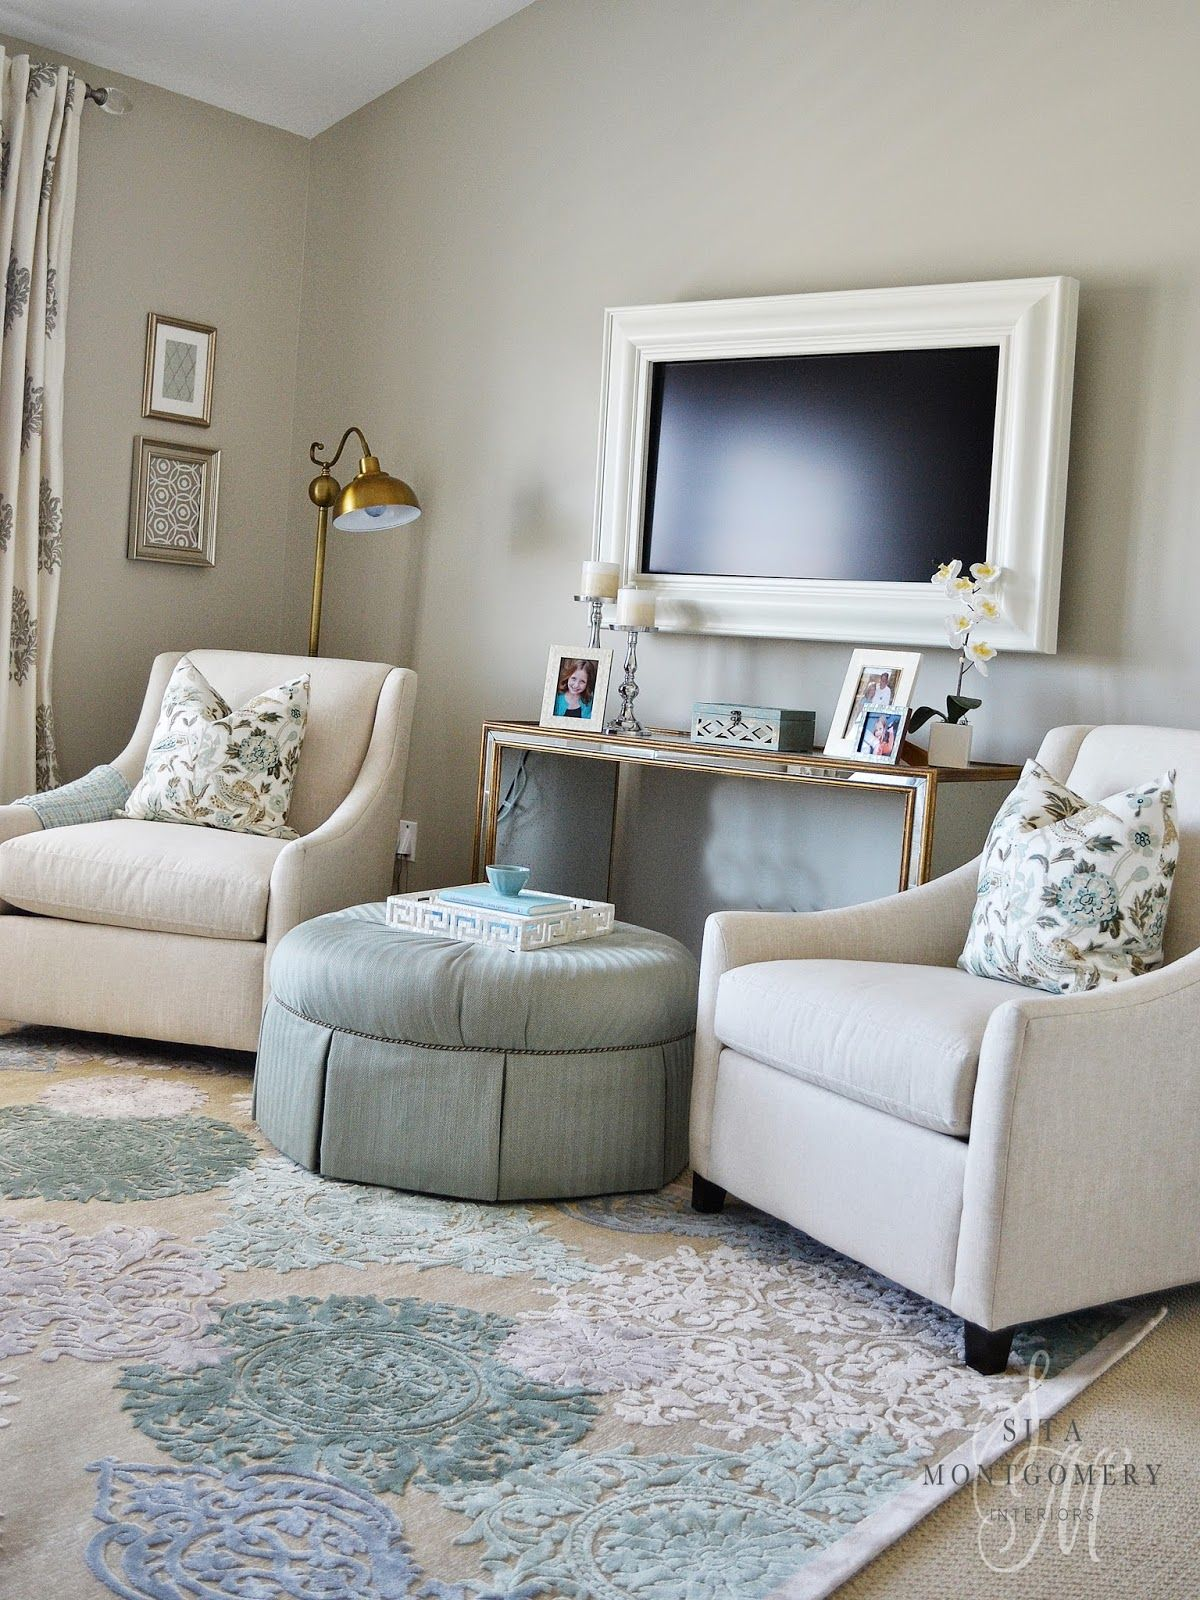 Love This Sitting Area In A Master Bedroom Sita Montgomery